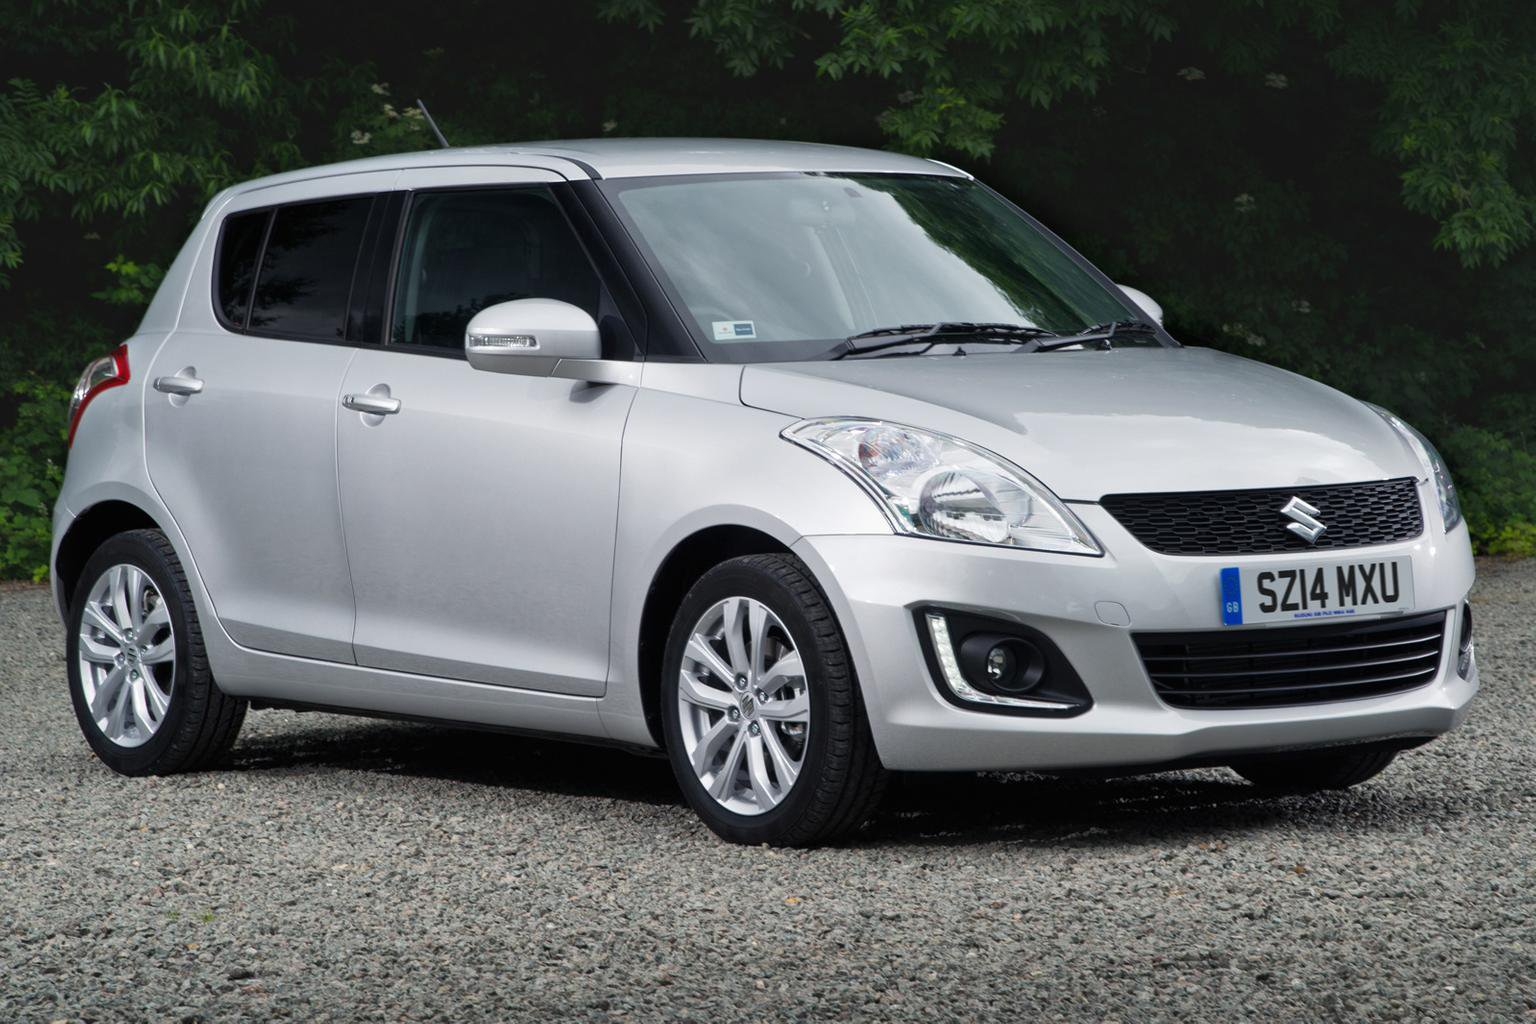 2014 Suzuki Swift SZ4 review